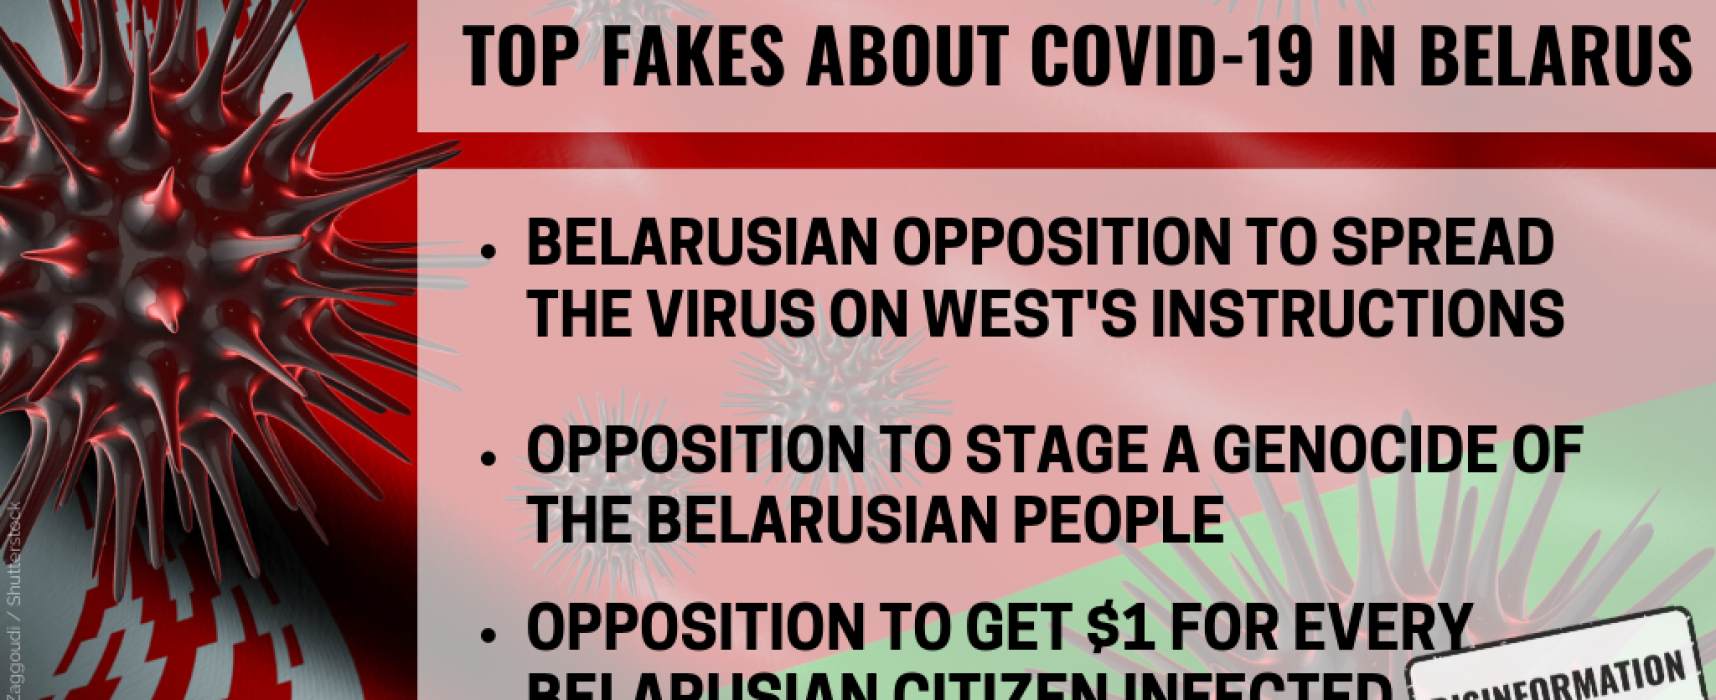 The Belarusian approach to the outbreak